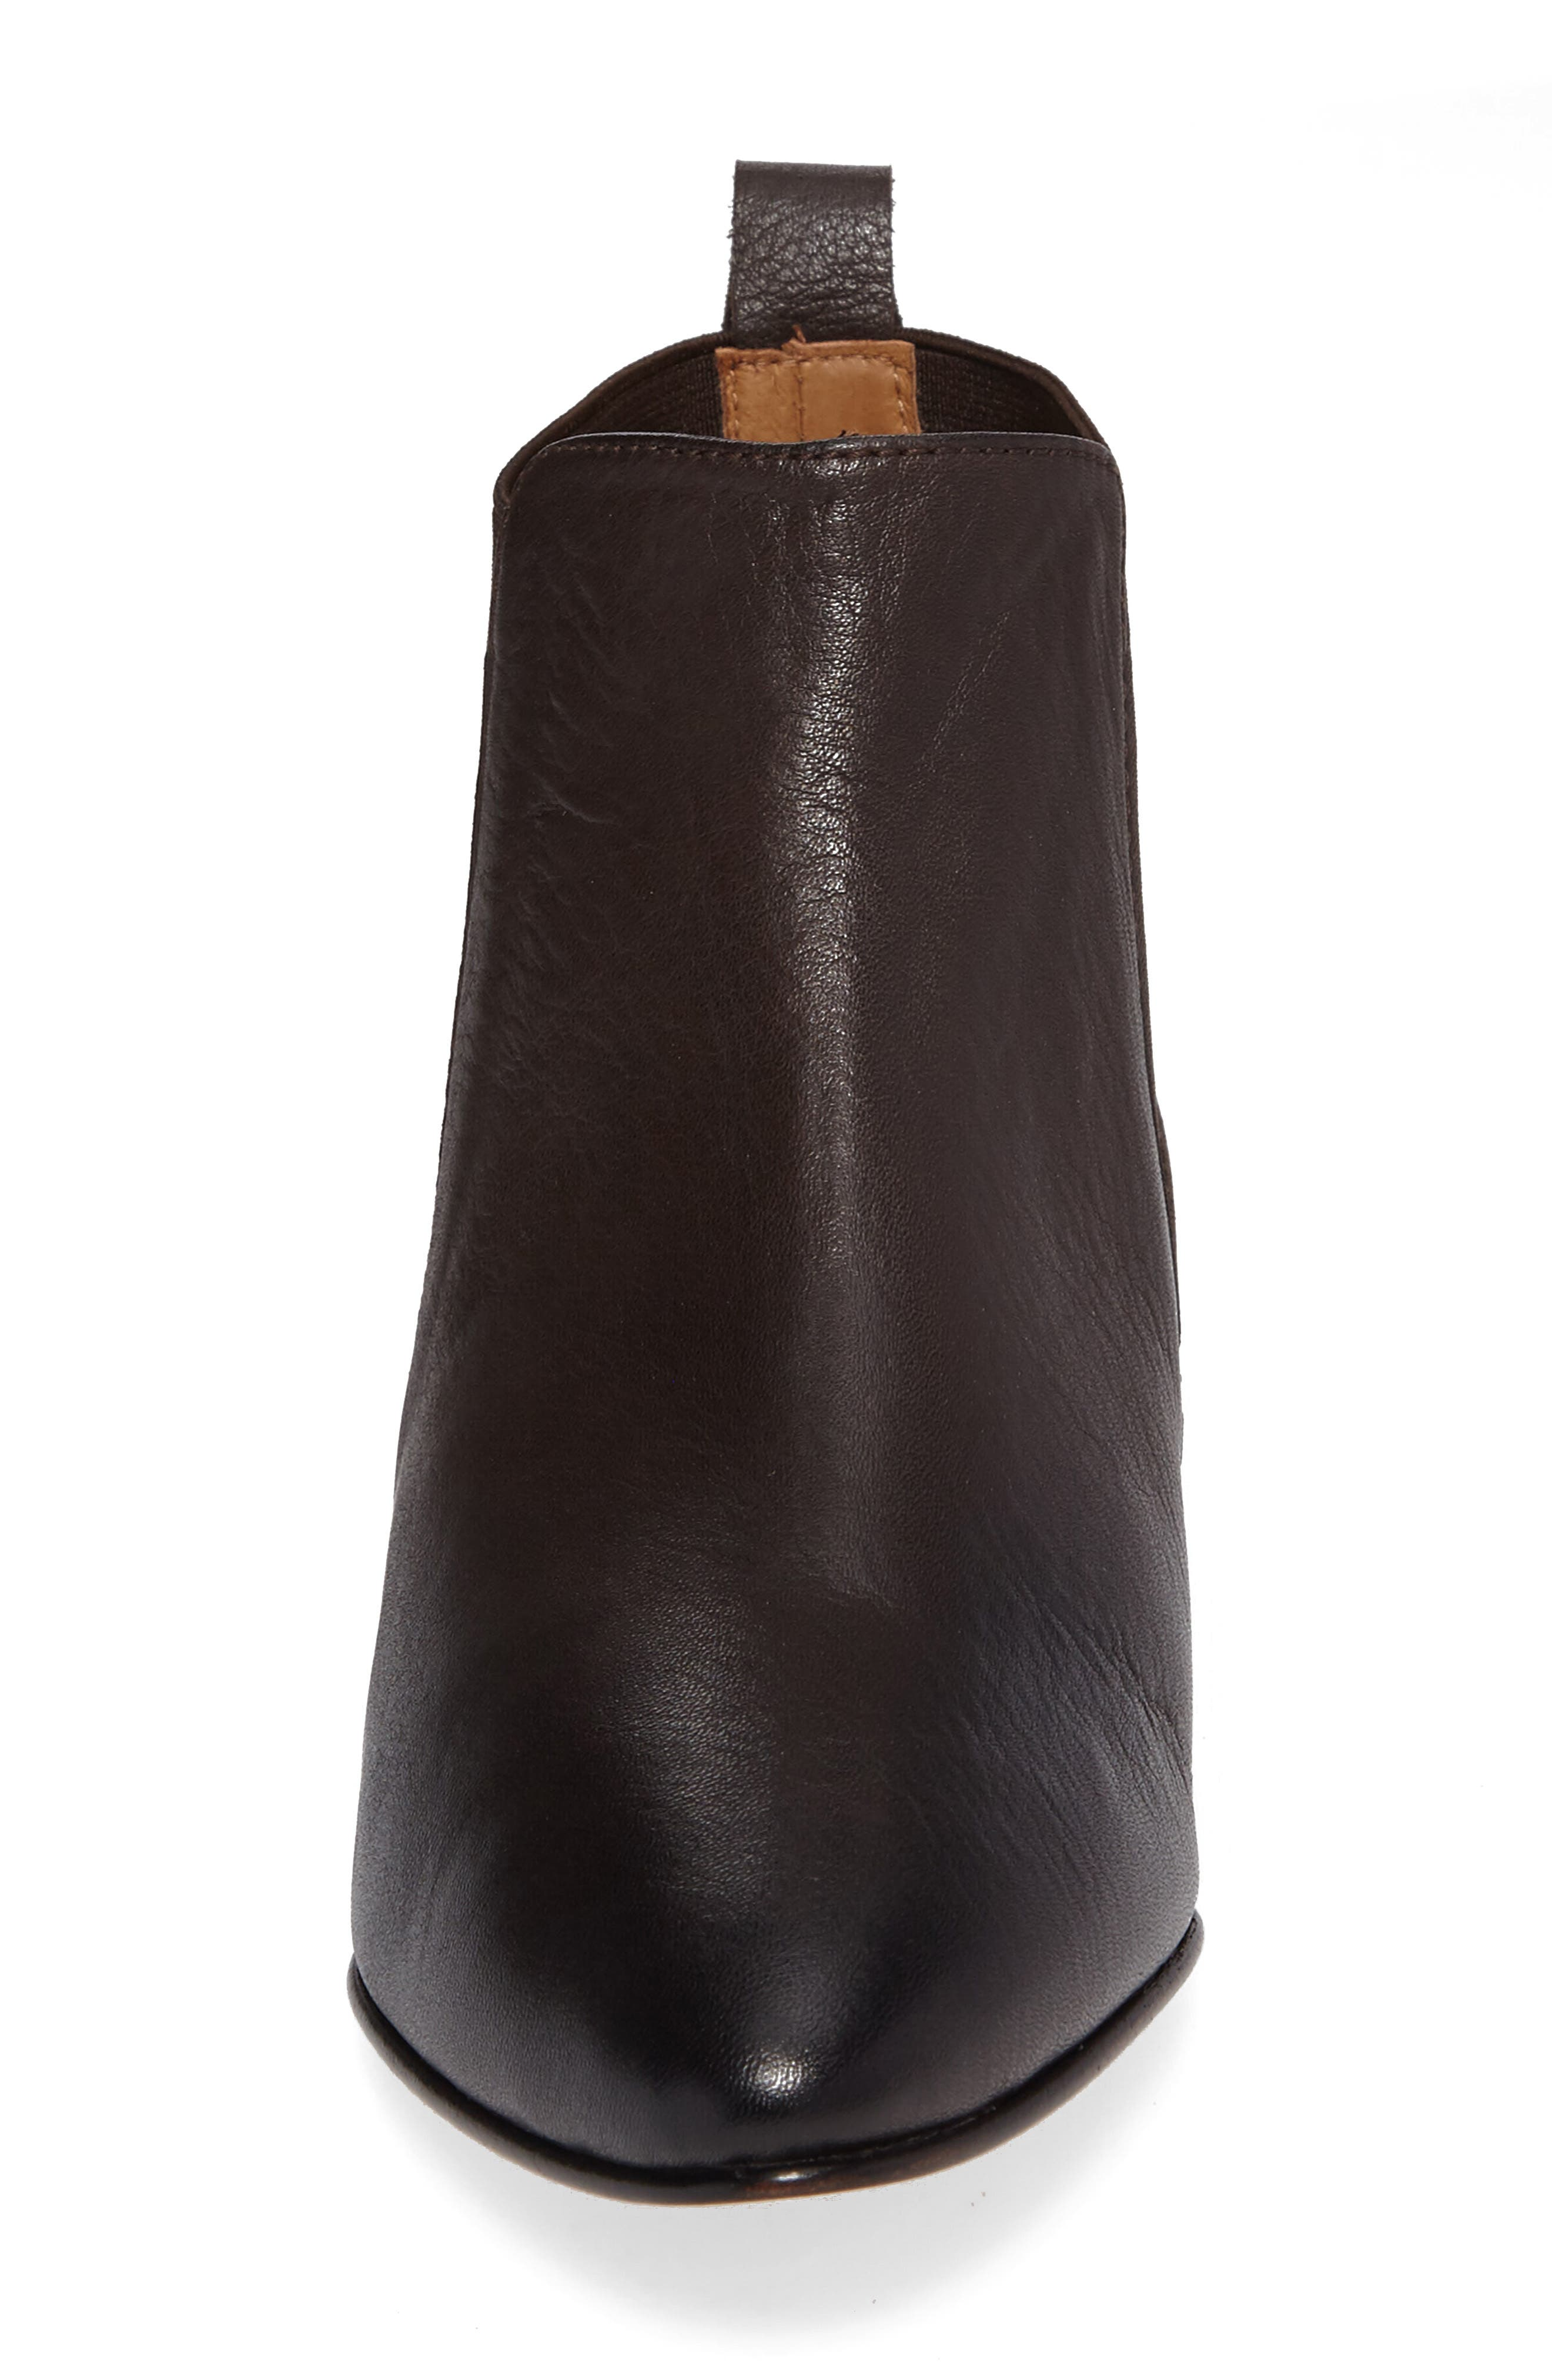 Newbury Bootie,                             Alternate thumbnail 4, color,                             Chocolate Leather